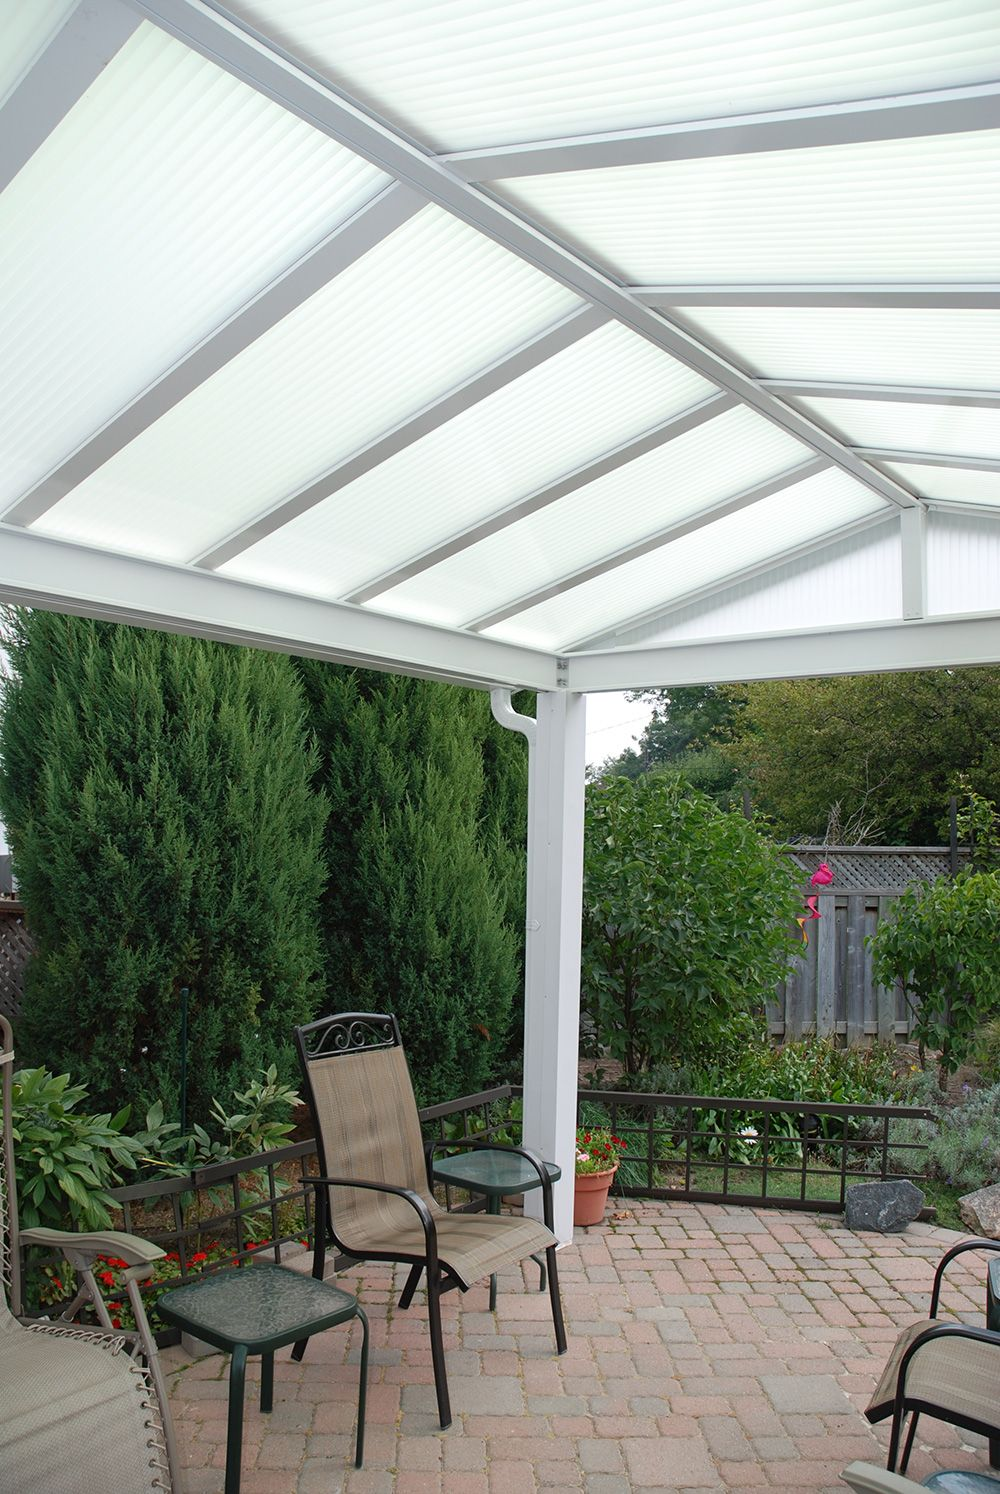 Freestanding Patio Covers Natural Light Patio Covers Pergola